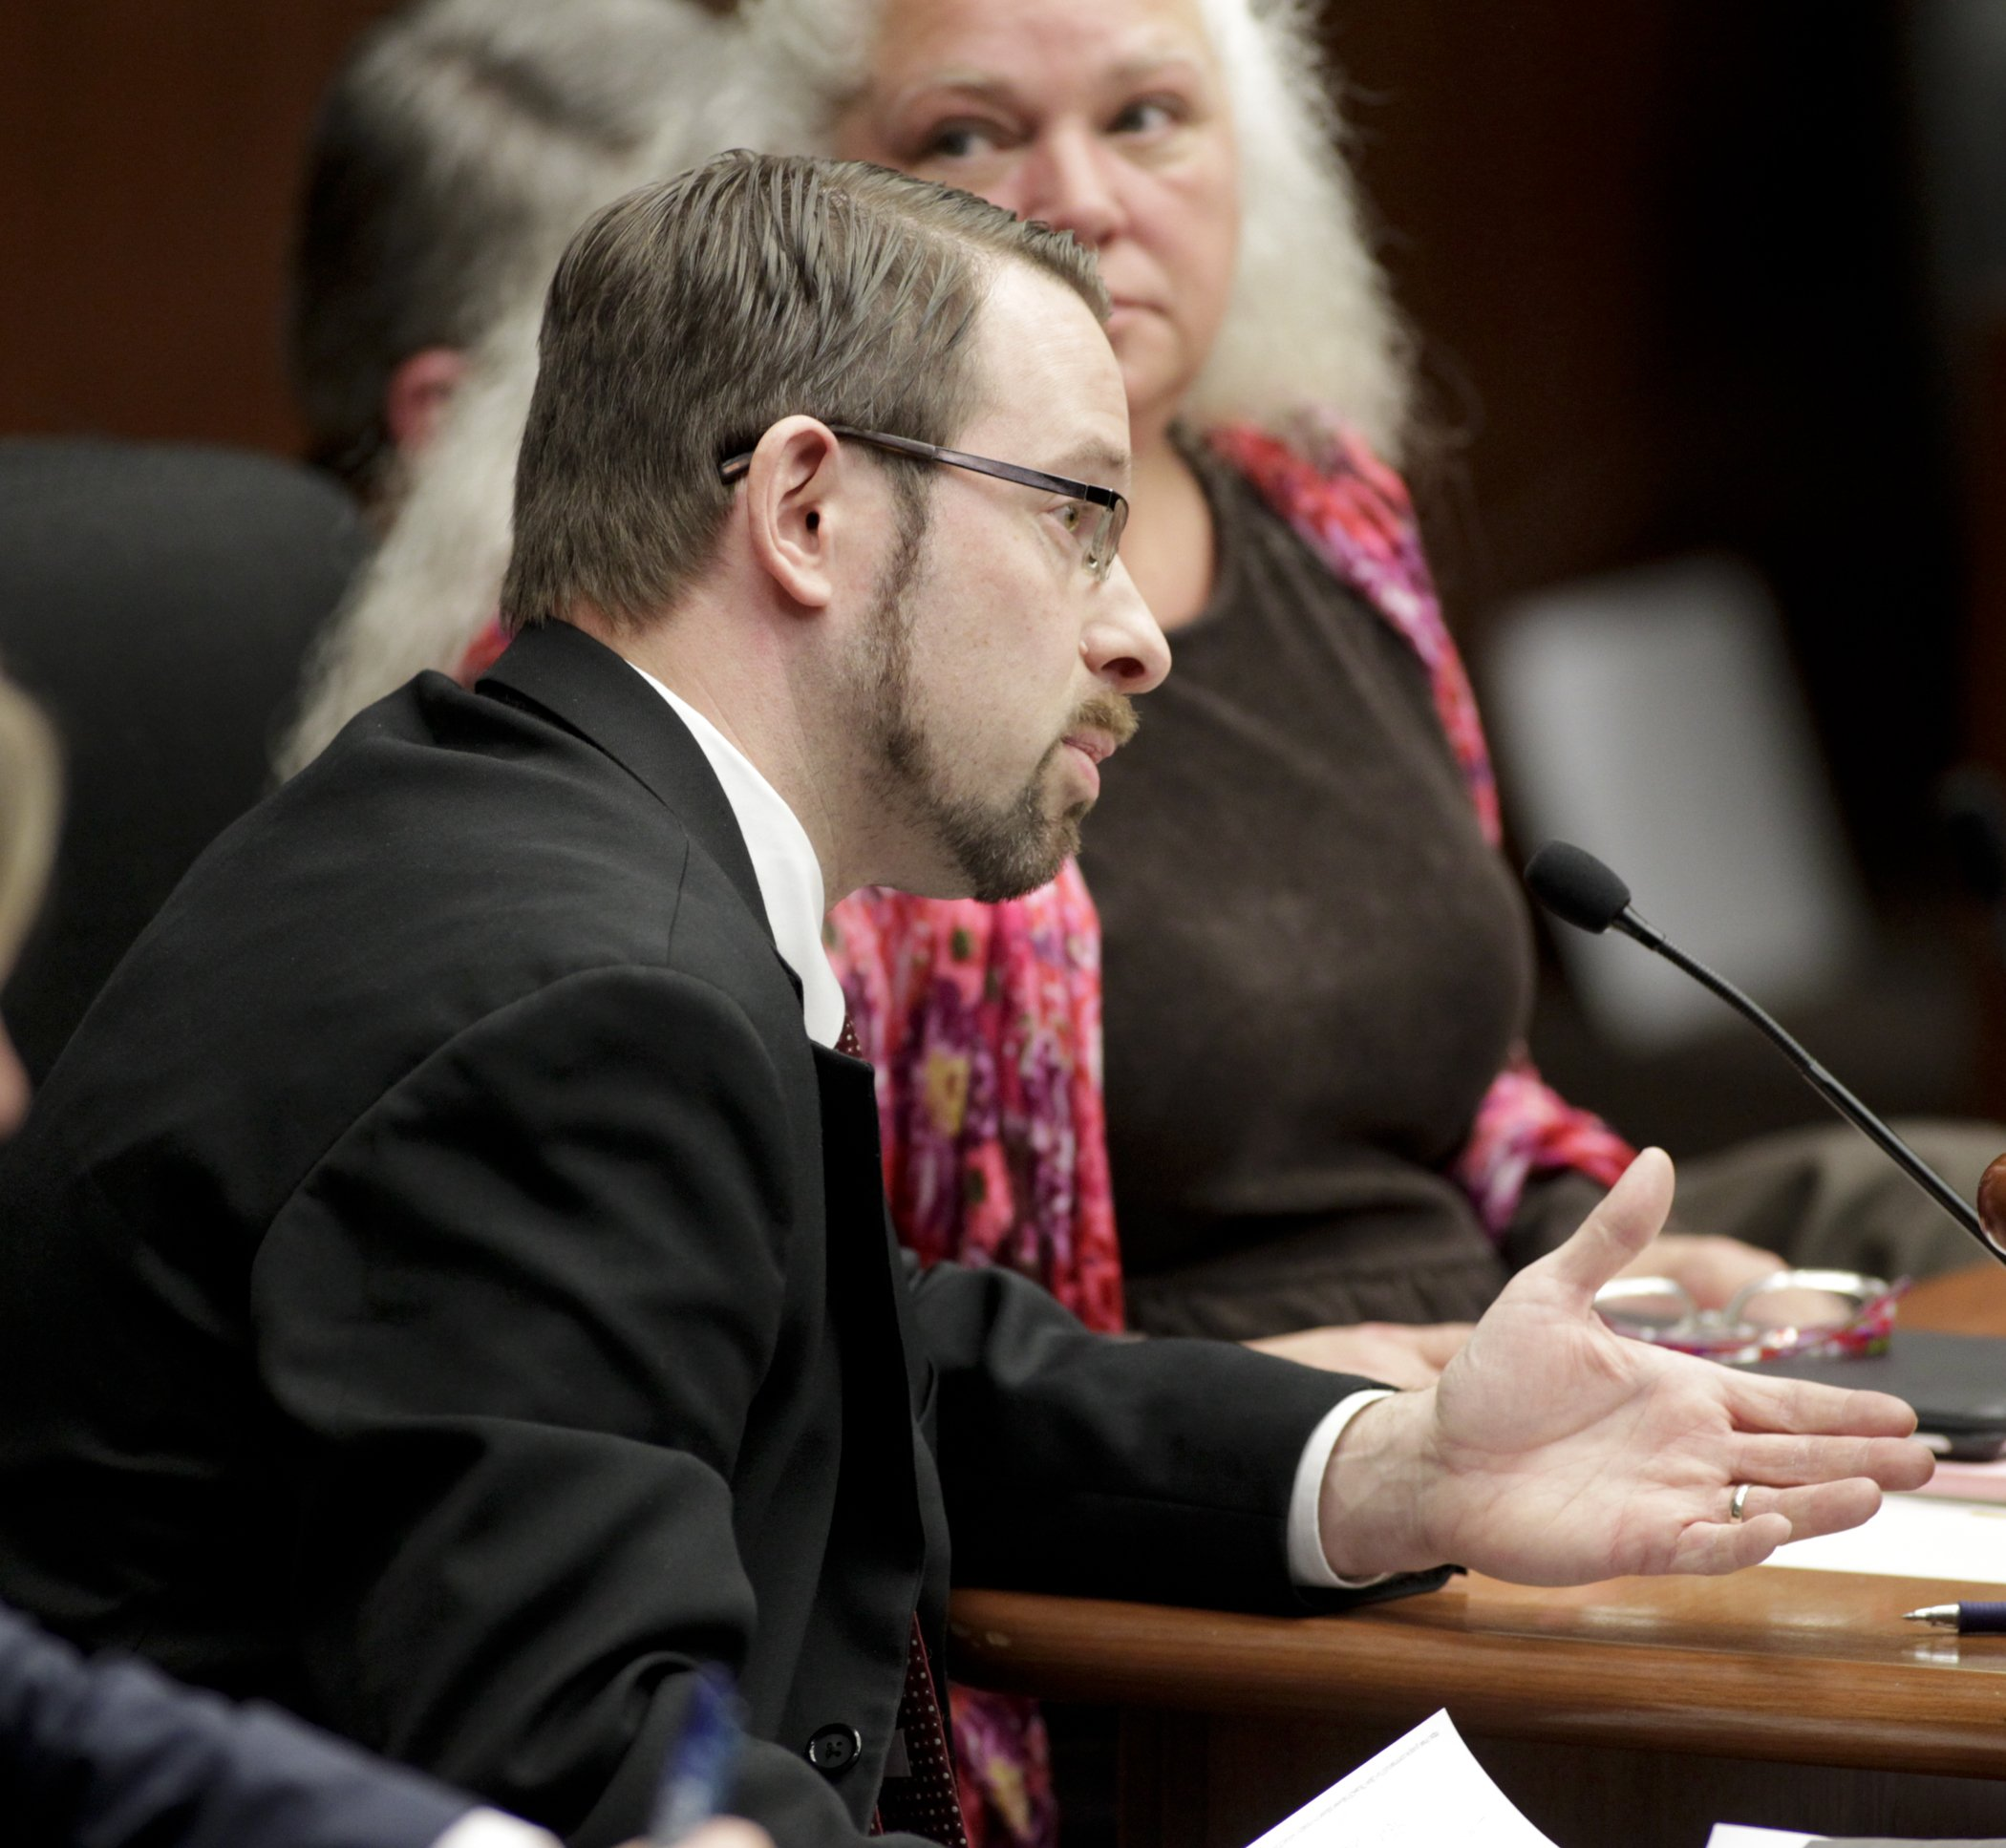 Matt Elhing from the Coalition for Government Information testifies on Rep. Mary Liz Holberg's bill HF2120, which would establish a Legislative Commission on Data Practices and Personal Data Privacy. (Photo by Paul Battaglia)